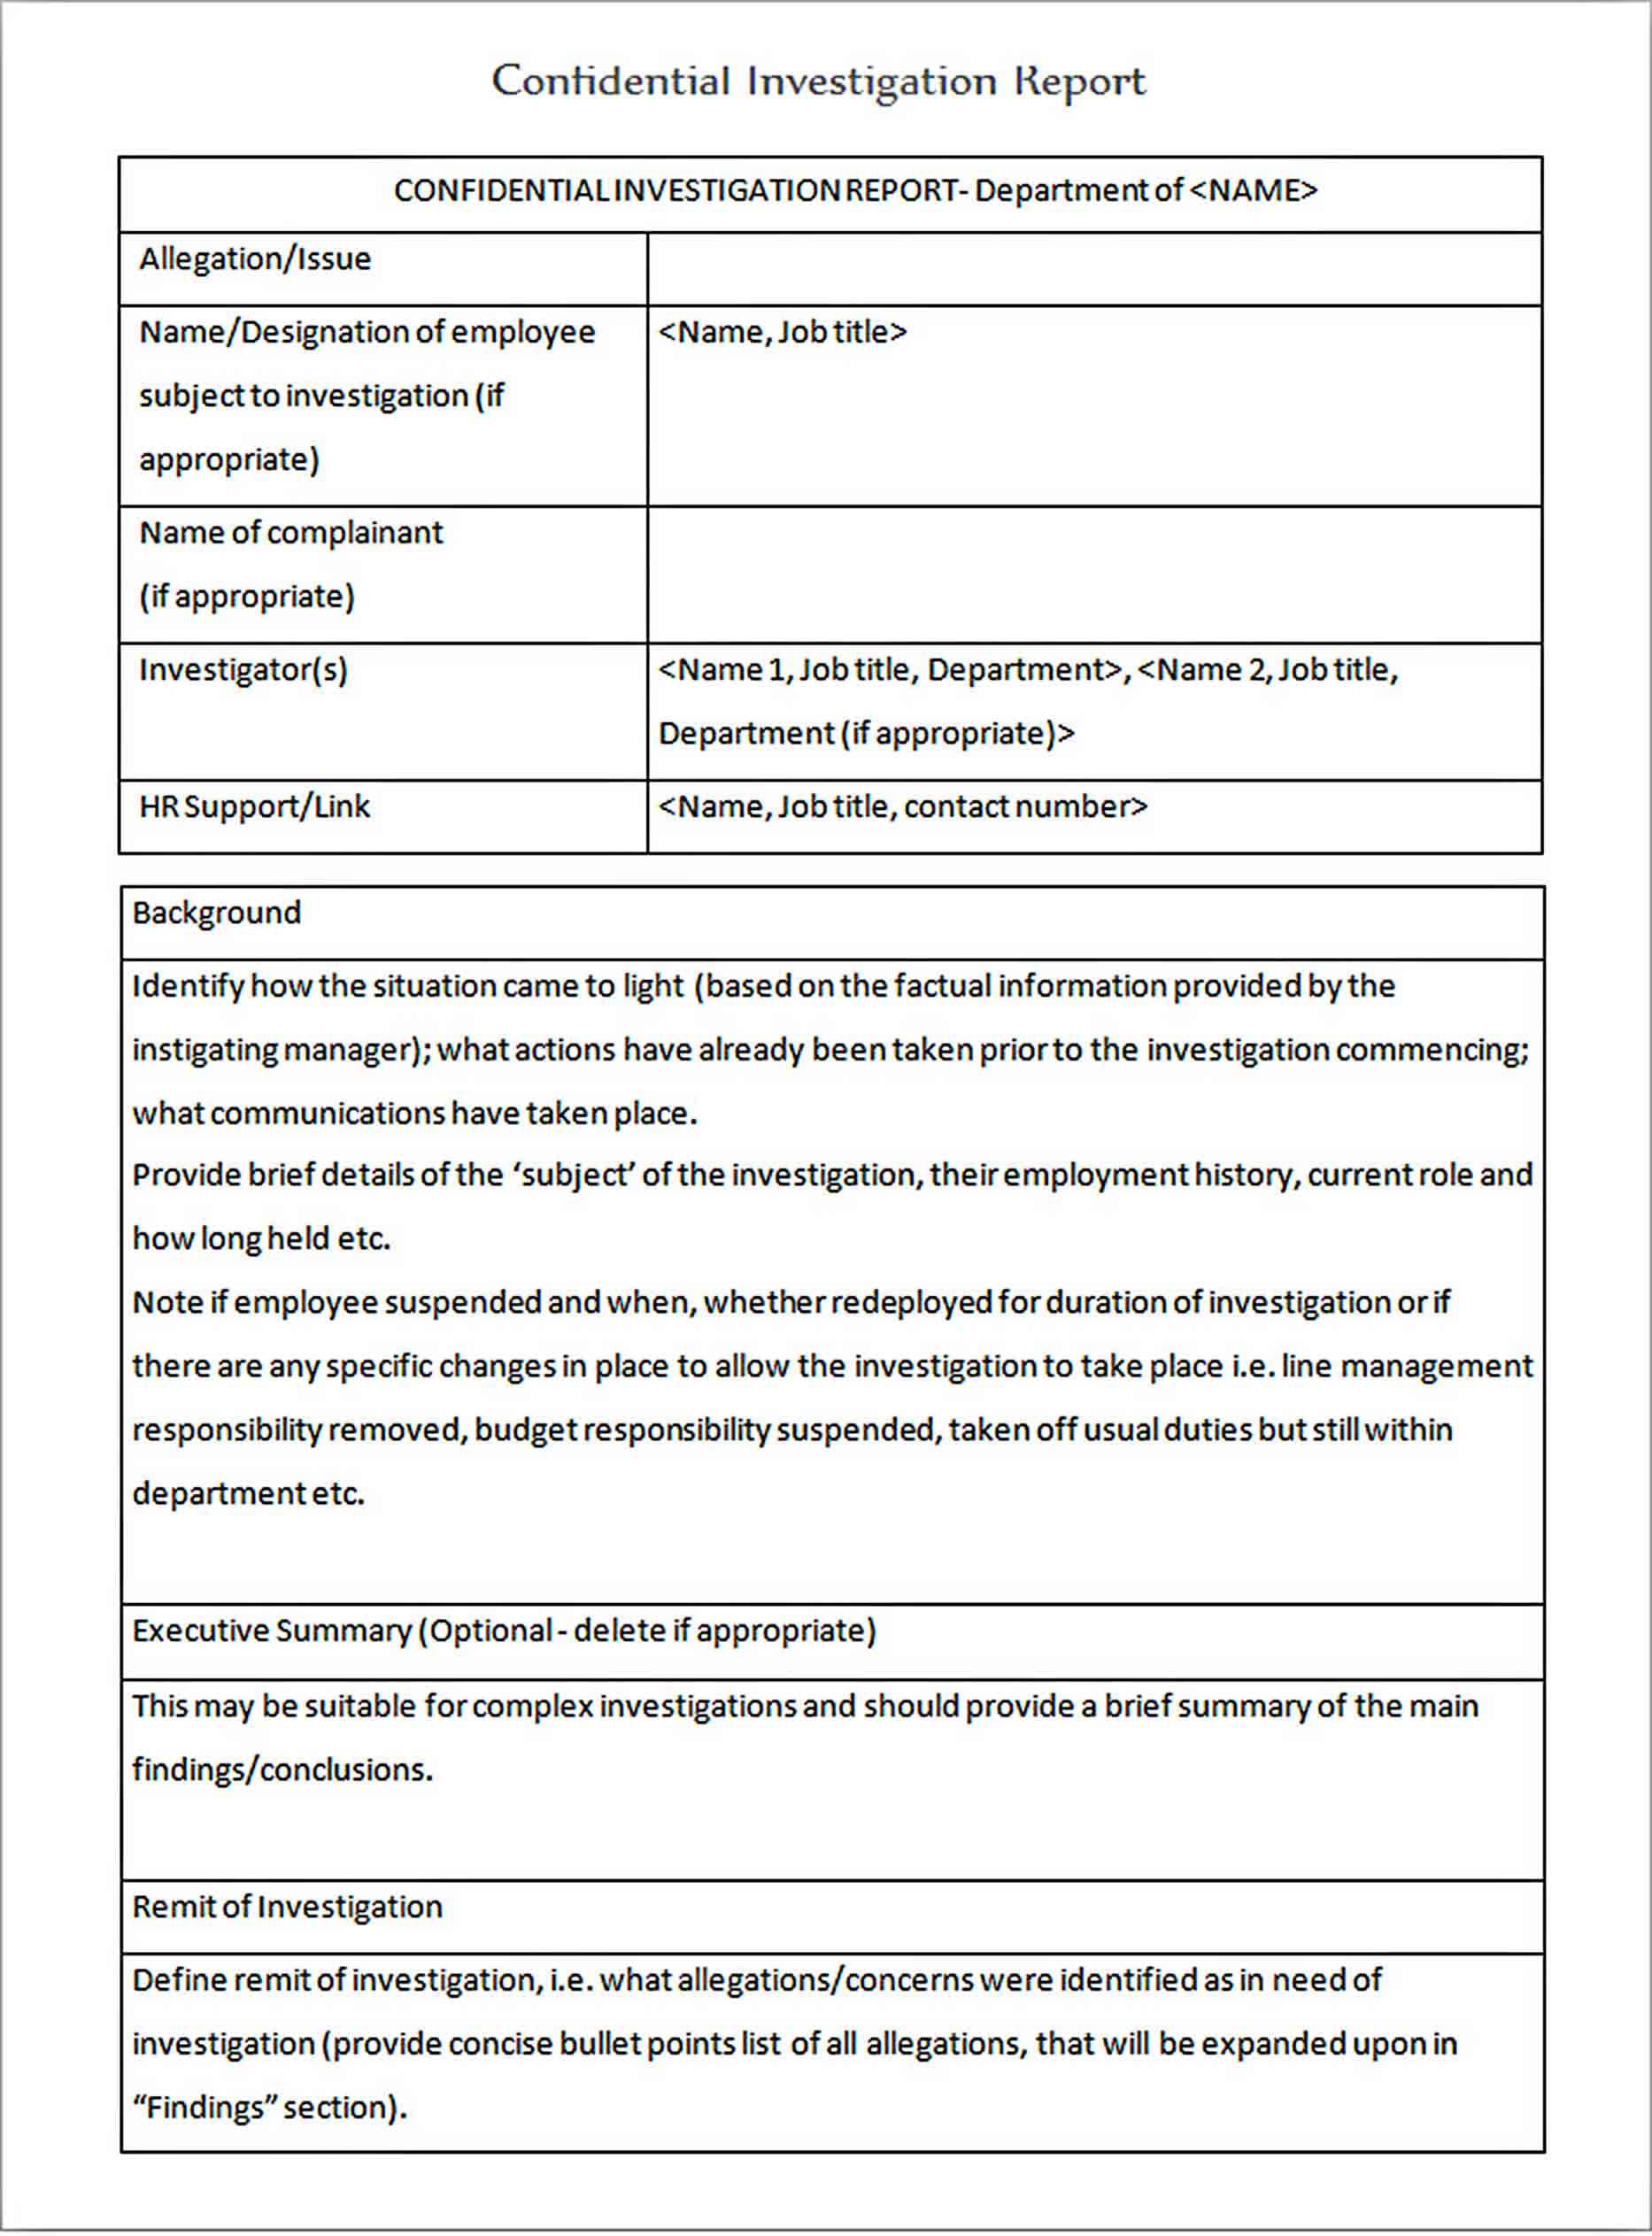 Templates Workplace Confidential Investigation Report